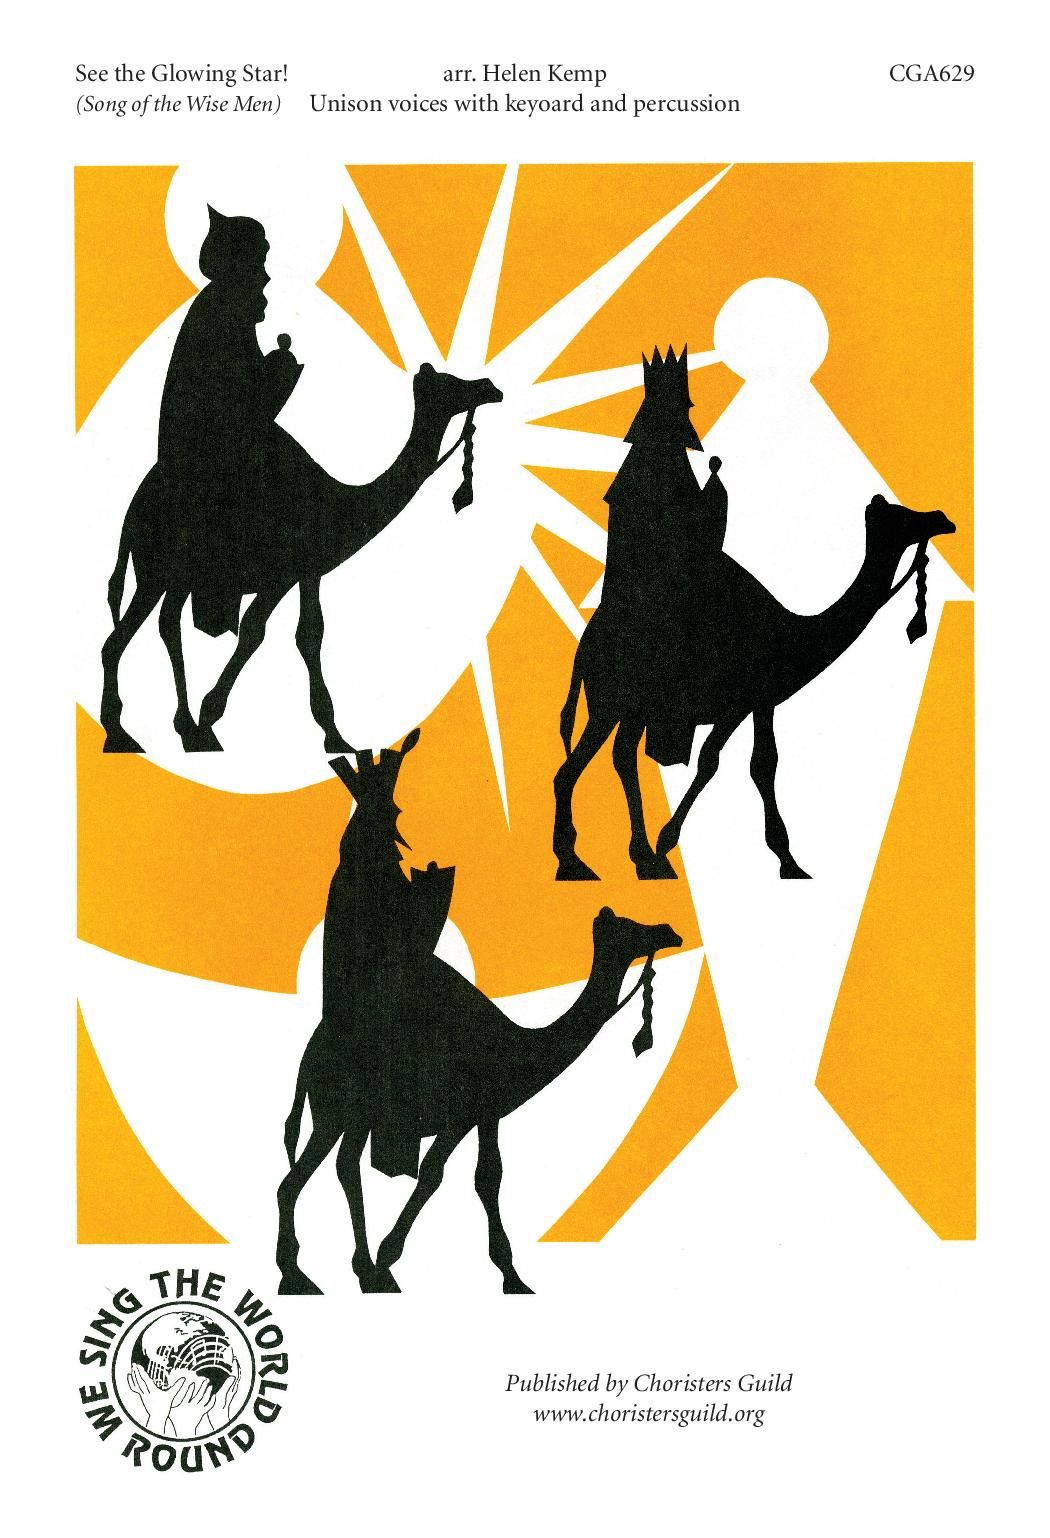 See the Glowing Star Song of the Wise Men